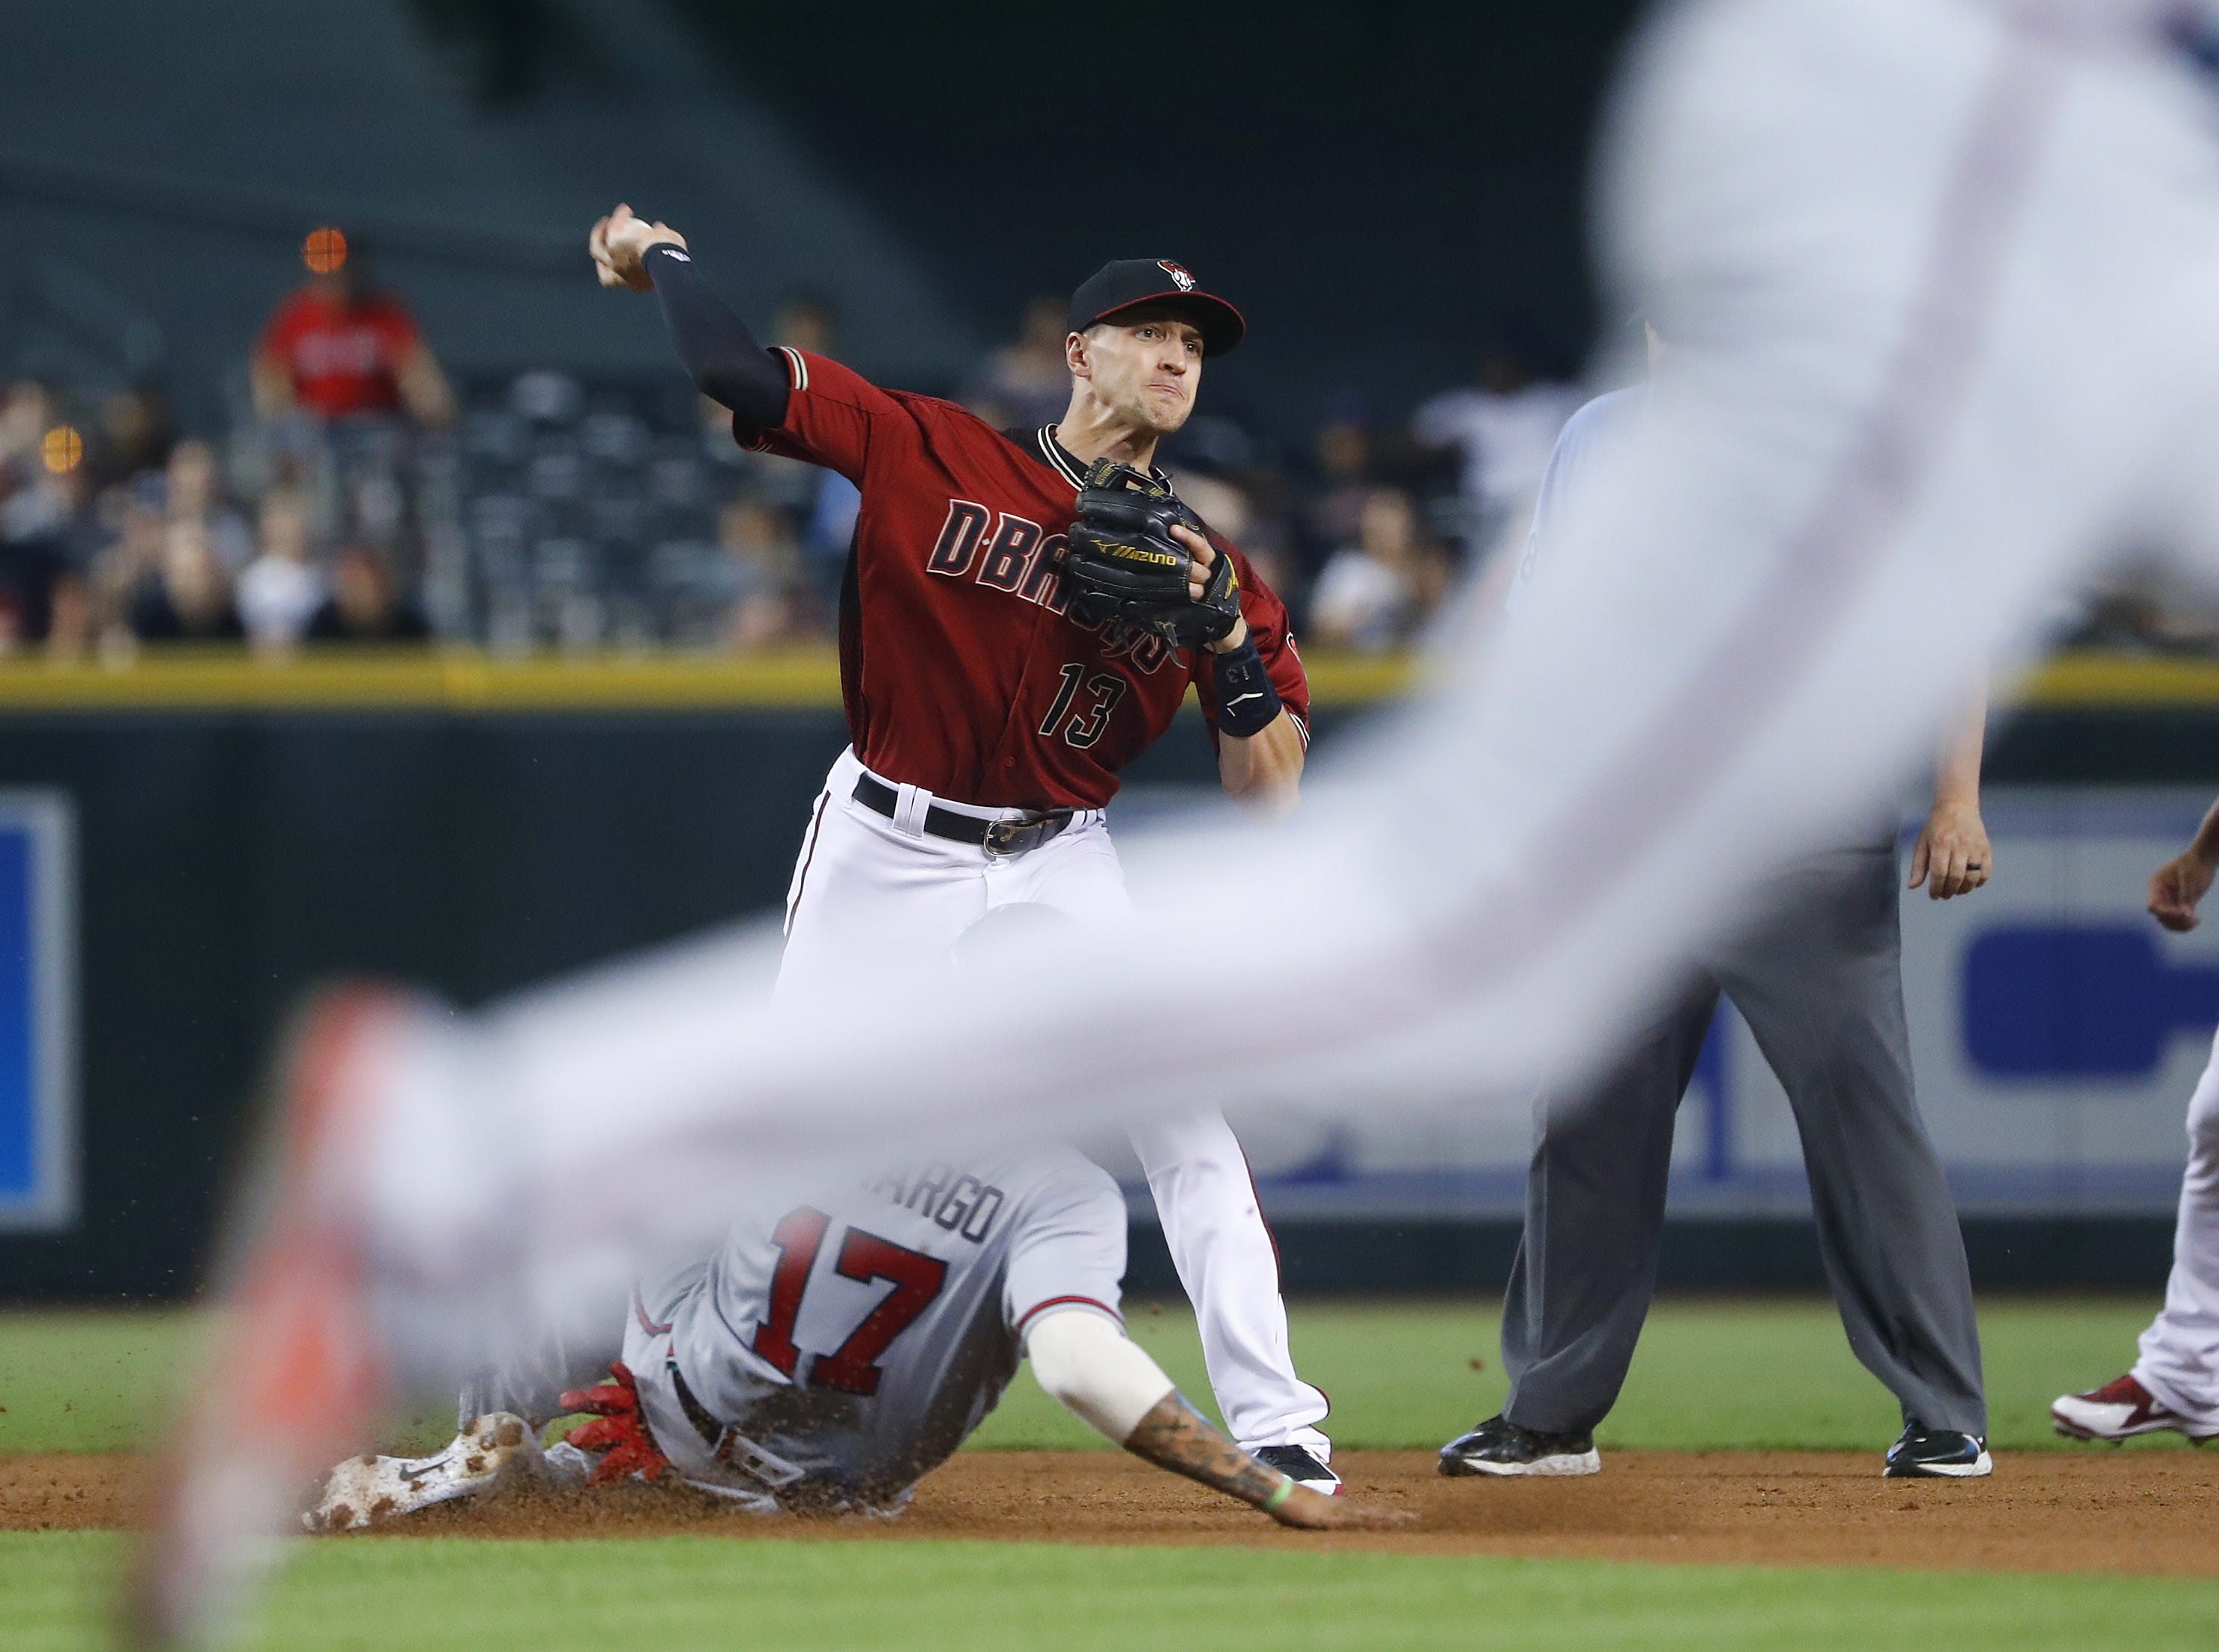 Diamondbacks Nick Ahmed (13) records a force out at second base on Braves Johan Camargo (17) and throws to first base for a double play during the fourth inning at Chase Field in Phoenix, Ariz. on Sept. 9, 2018.